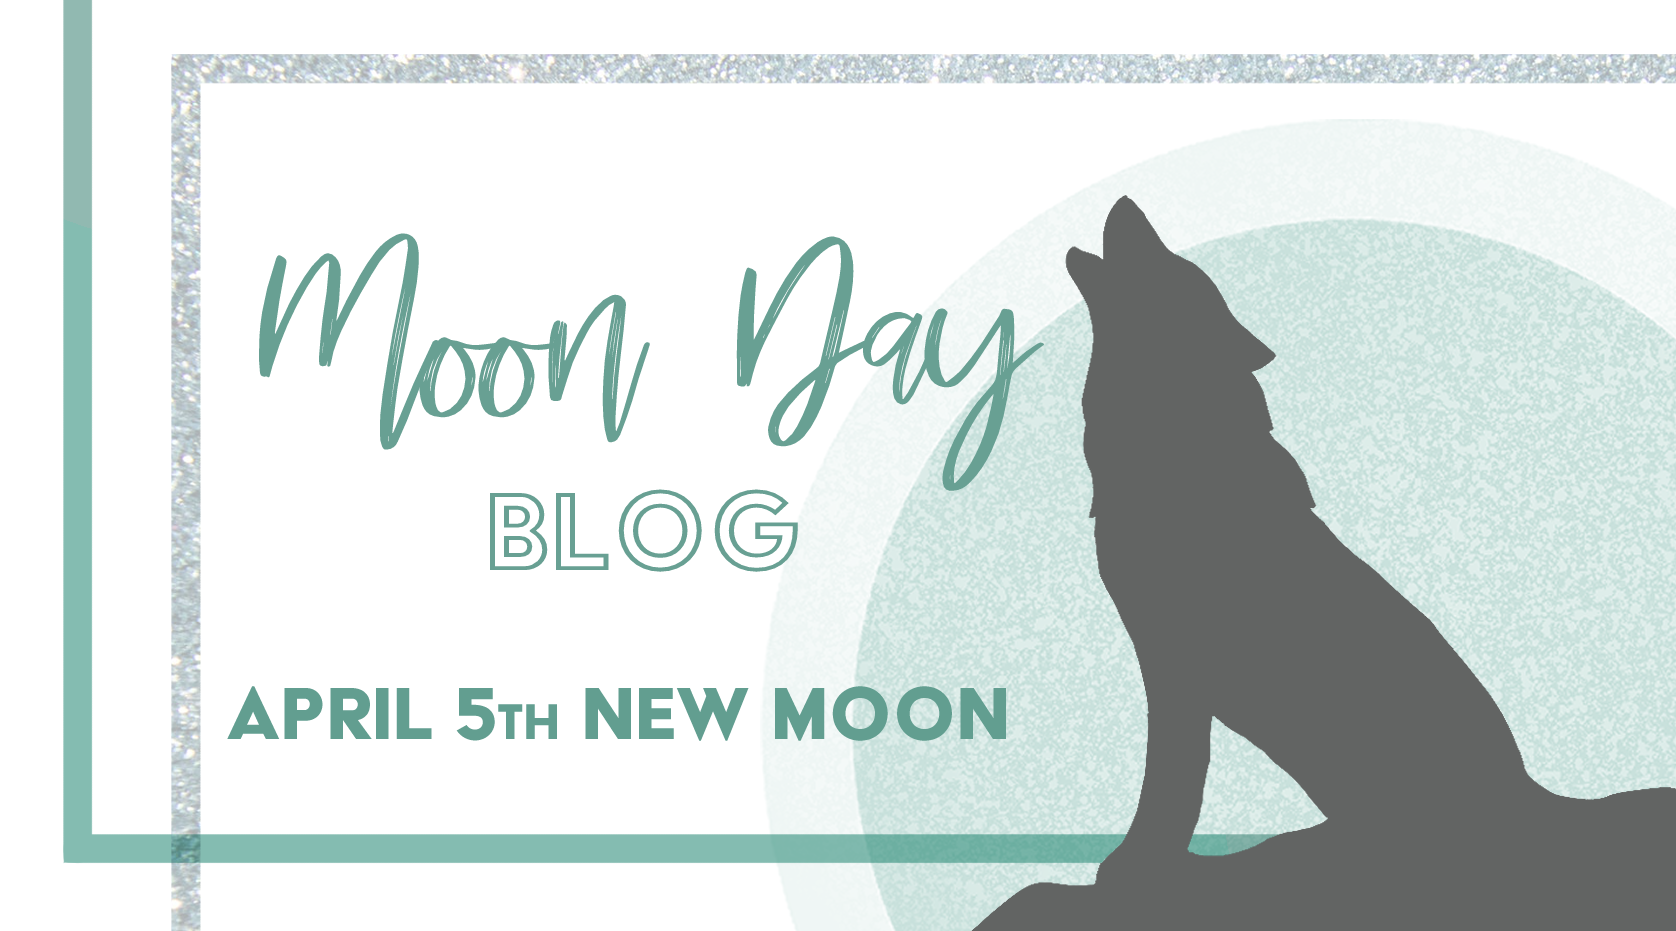 Moon Day – April 5th New Moon